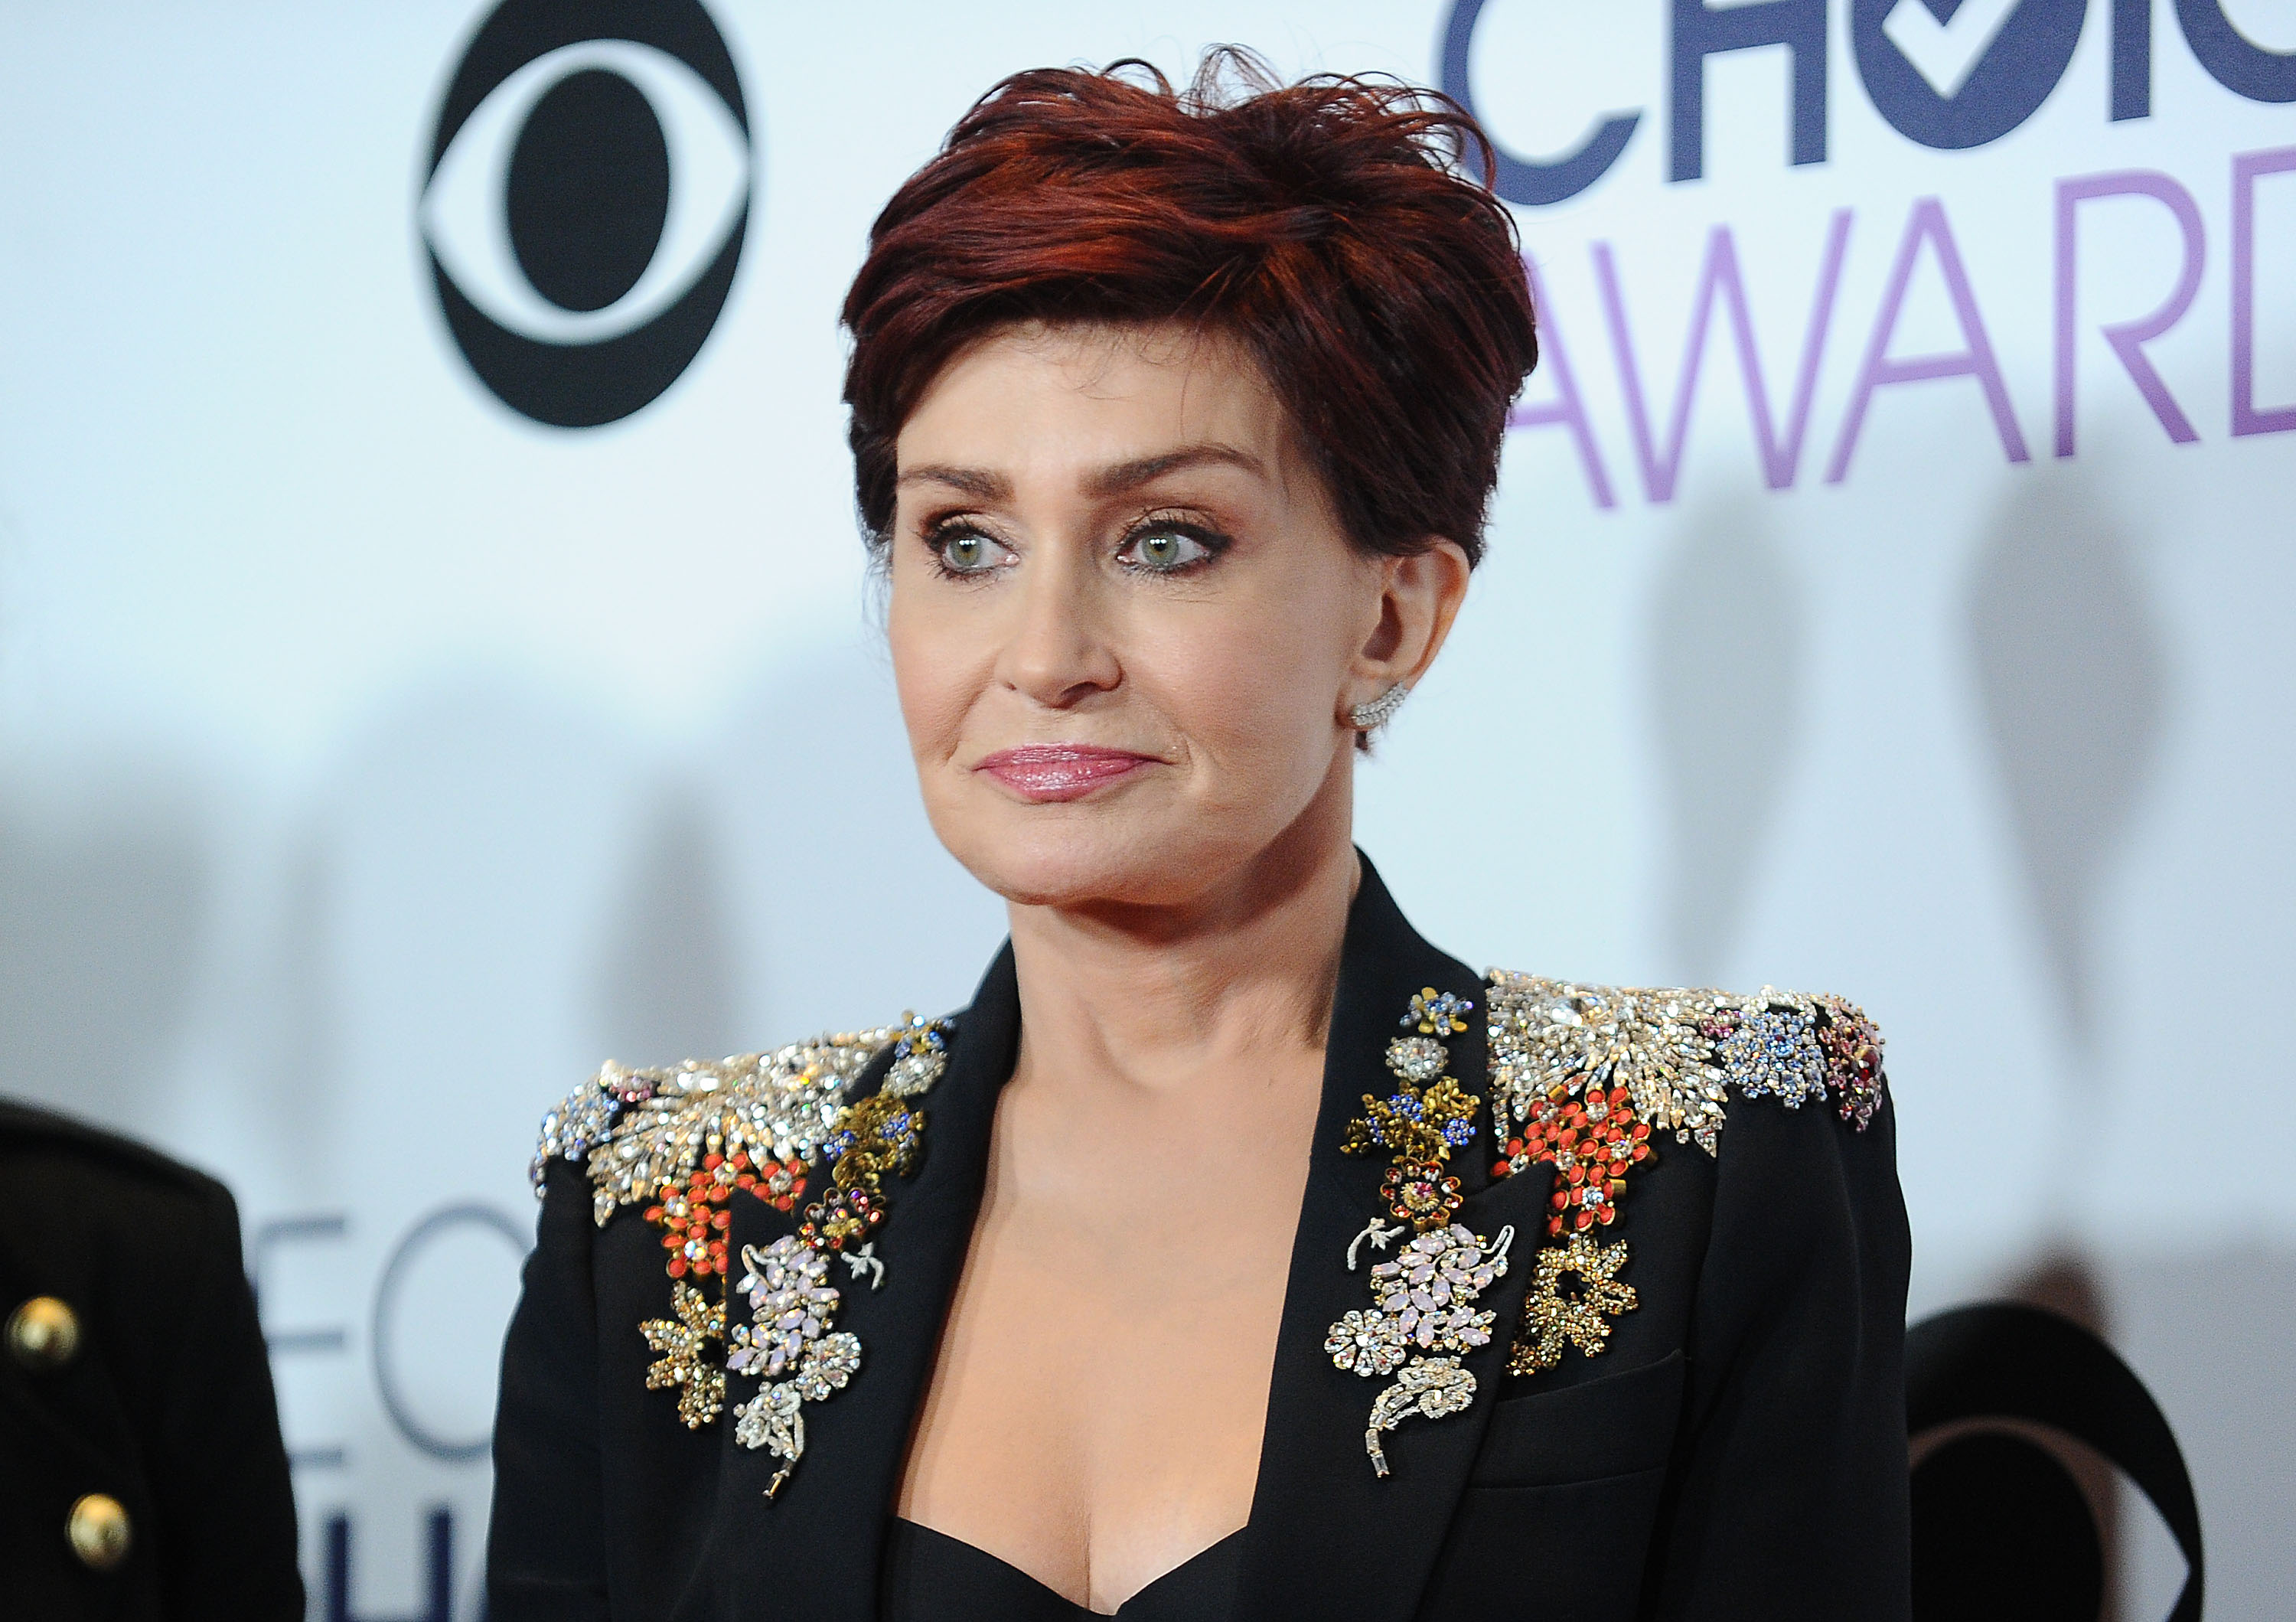 Sharon Osbourne talks about her recent mental health issues, and this is why it's SO important